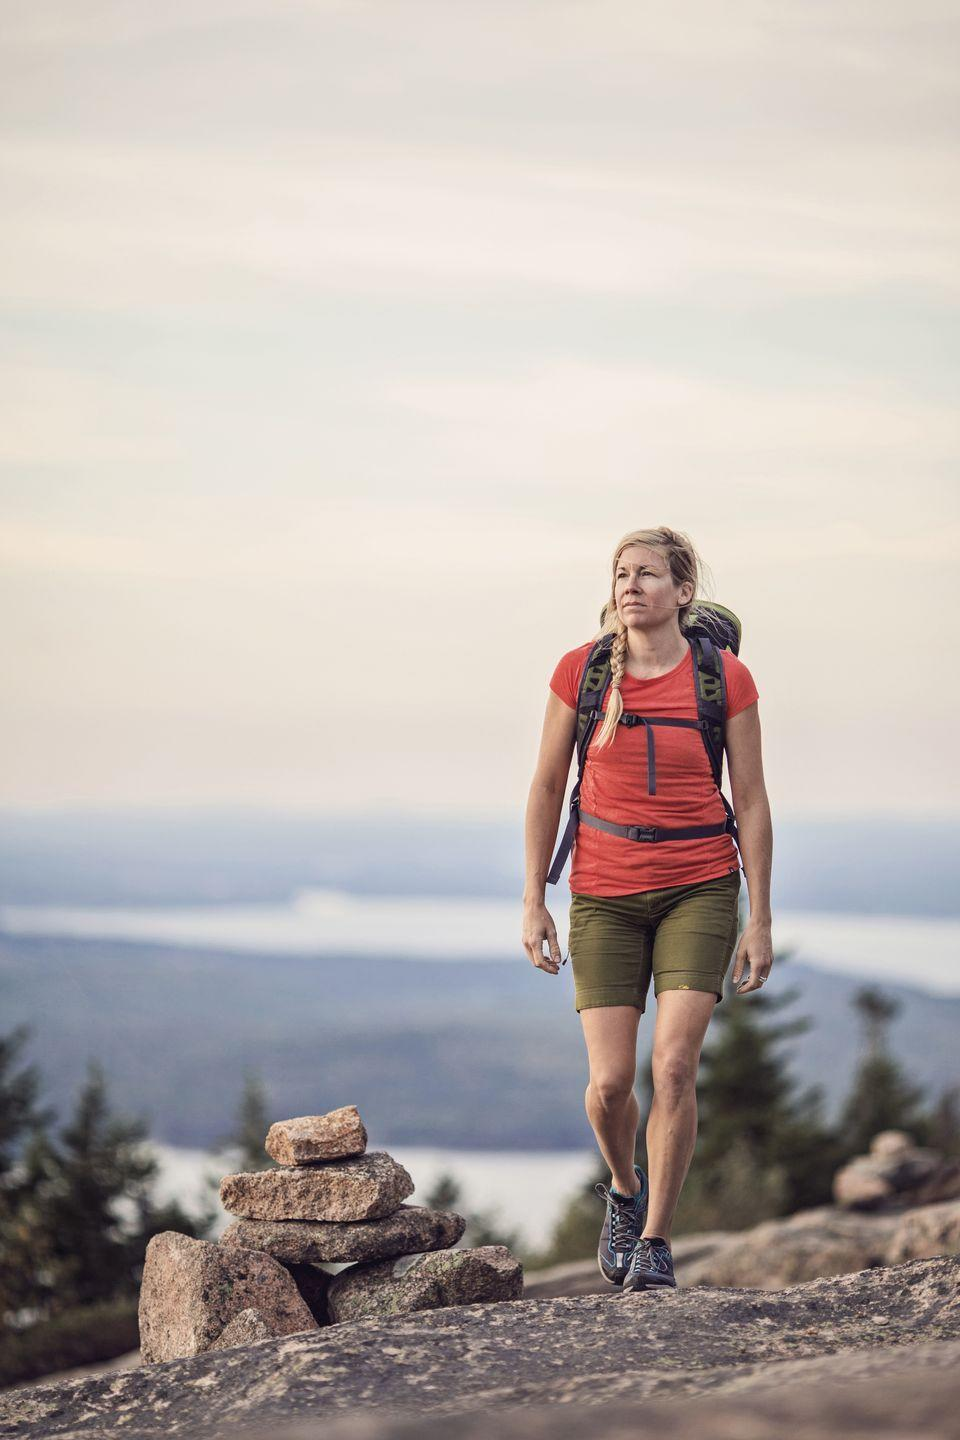 "<p>Being in nature — especially in motion — boosts mood, sharpens thinking, and makes you feel calmer and more generous. Time outdoors may also reduce levels of the stress hormone cortisol, says clinical exercise physiologist <a href=""https://www.sunderland.ac.uk/about/staff/sport-and-exercise-sciences/paulinnerd/"" rel=""nofollow noopener"" target=""_blank"" data-ylk=""slk:Paul Innerd, Ph.D."" class=""link rapid-noclick-resp"">Paul Innerd, Ph.D.</a>, of the University of Sunderland in the U.K.</p>"